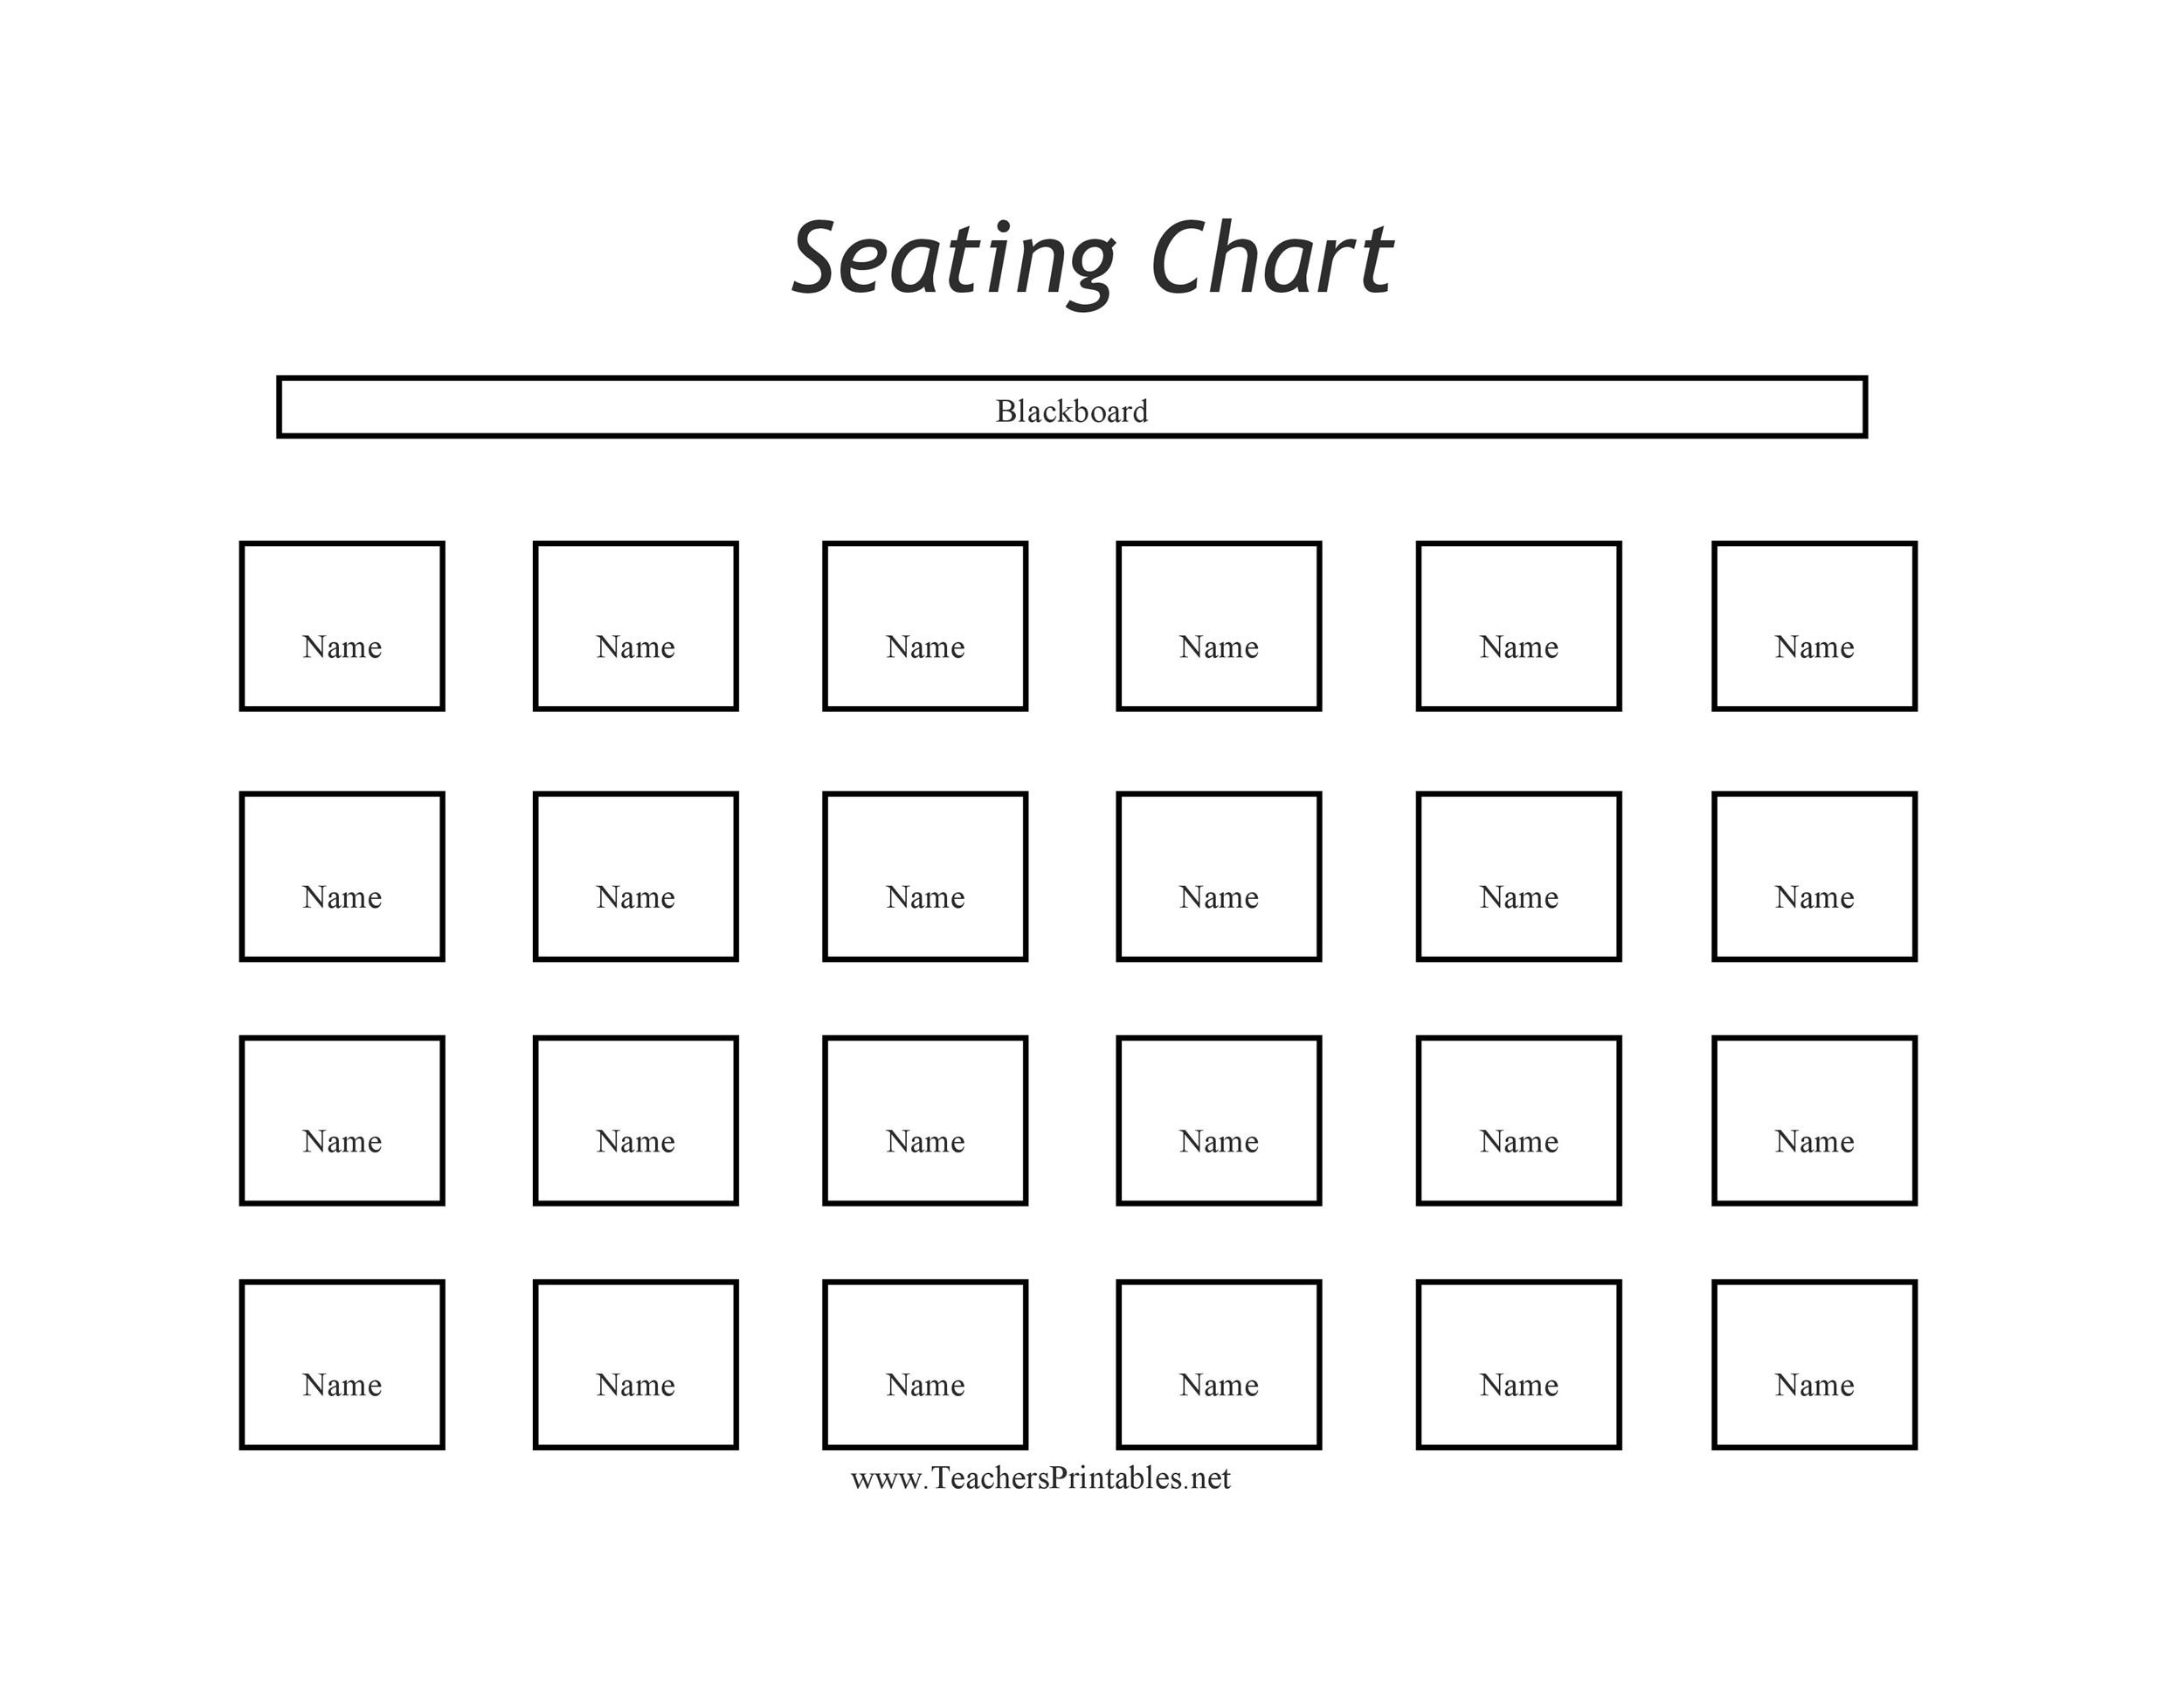 Satisfactory image with printable seating chart template